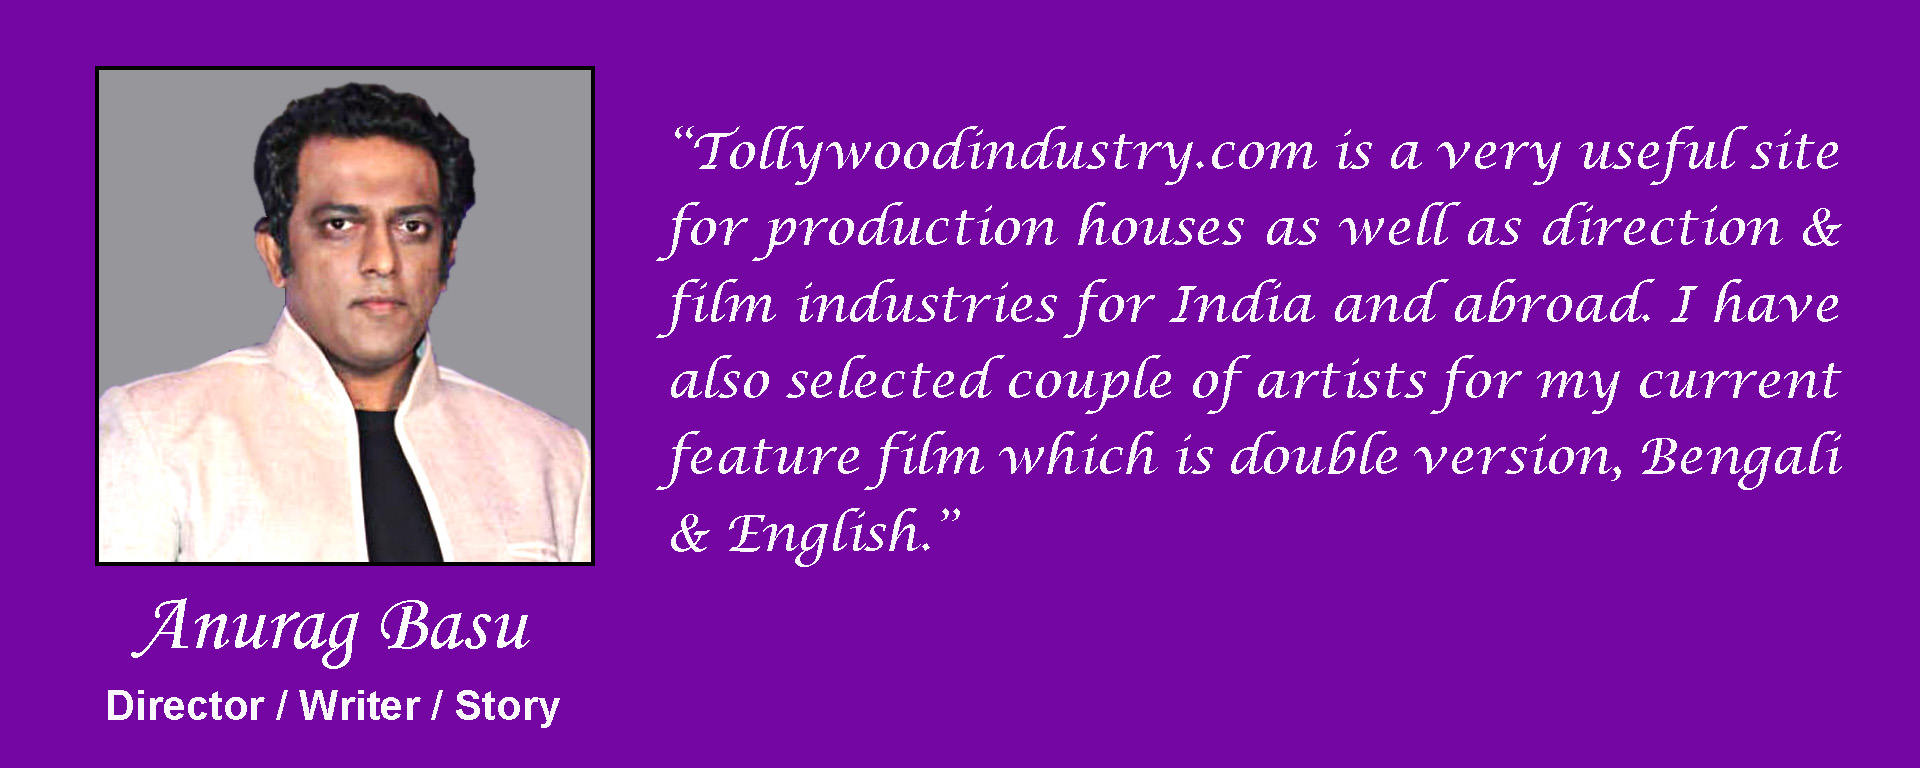 Tollywood Industry -